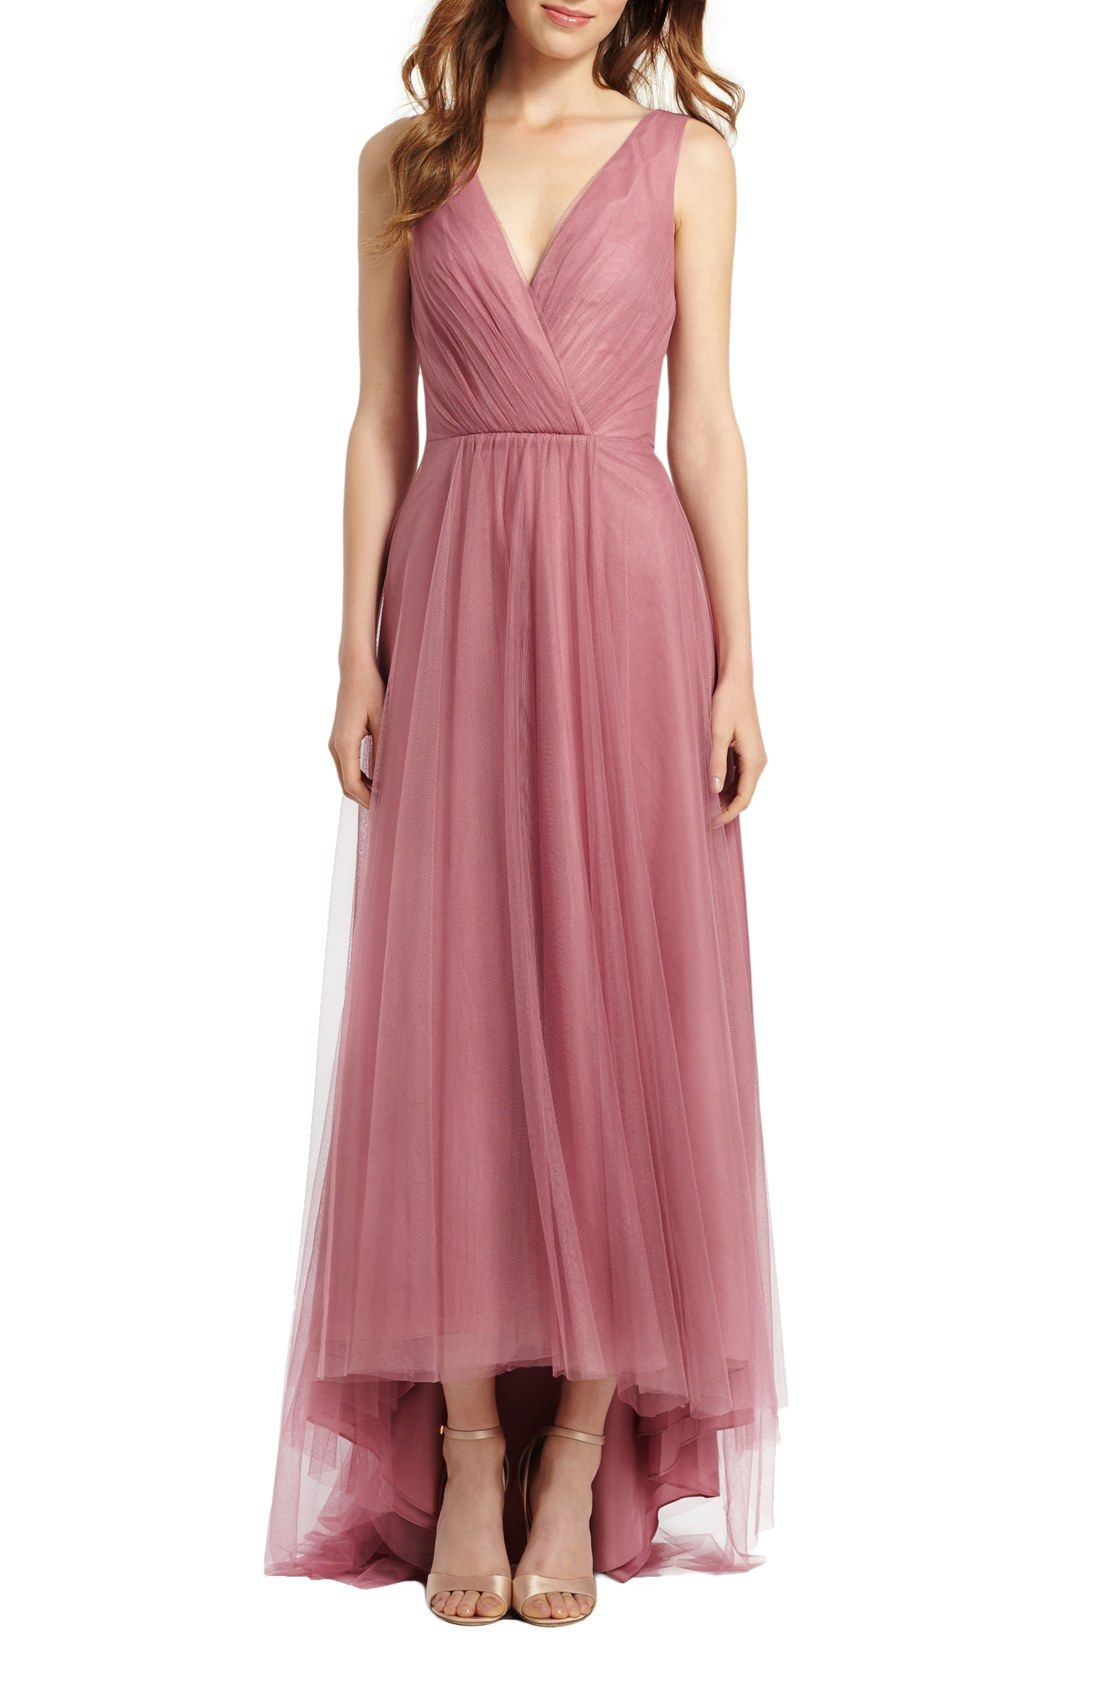 i like this rose color - maybe too bridesmaids-y | Monique Lhuillier ...